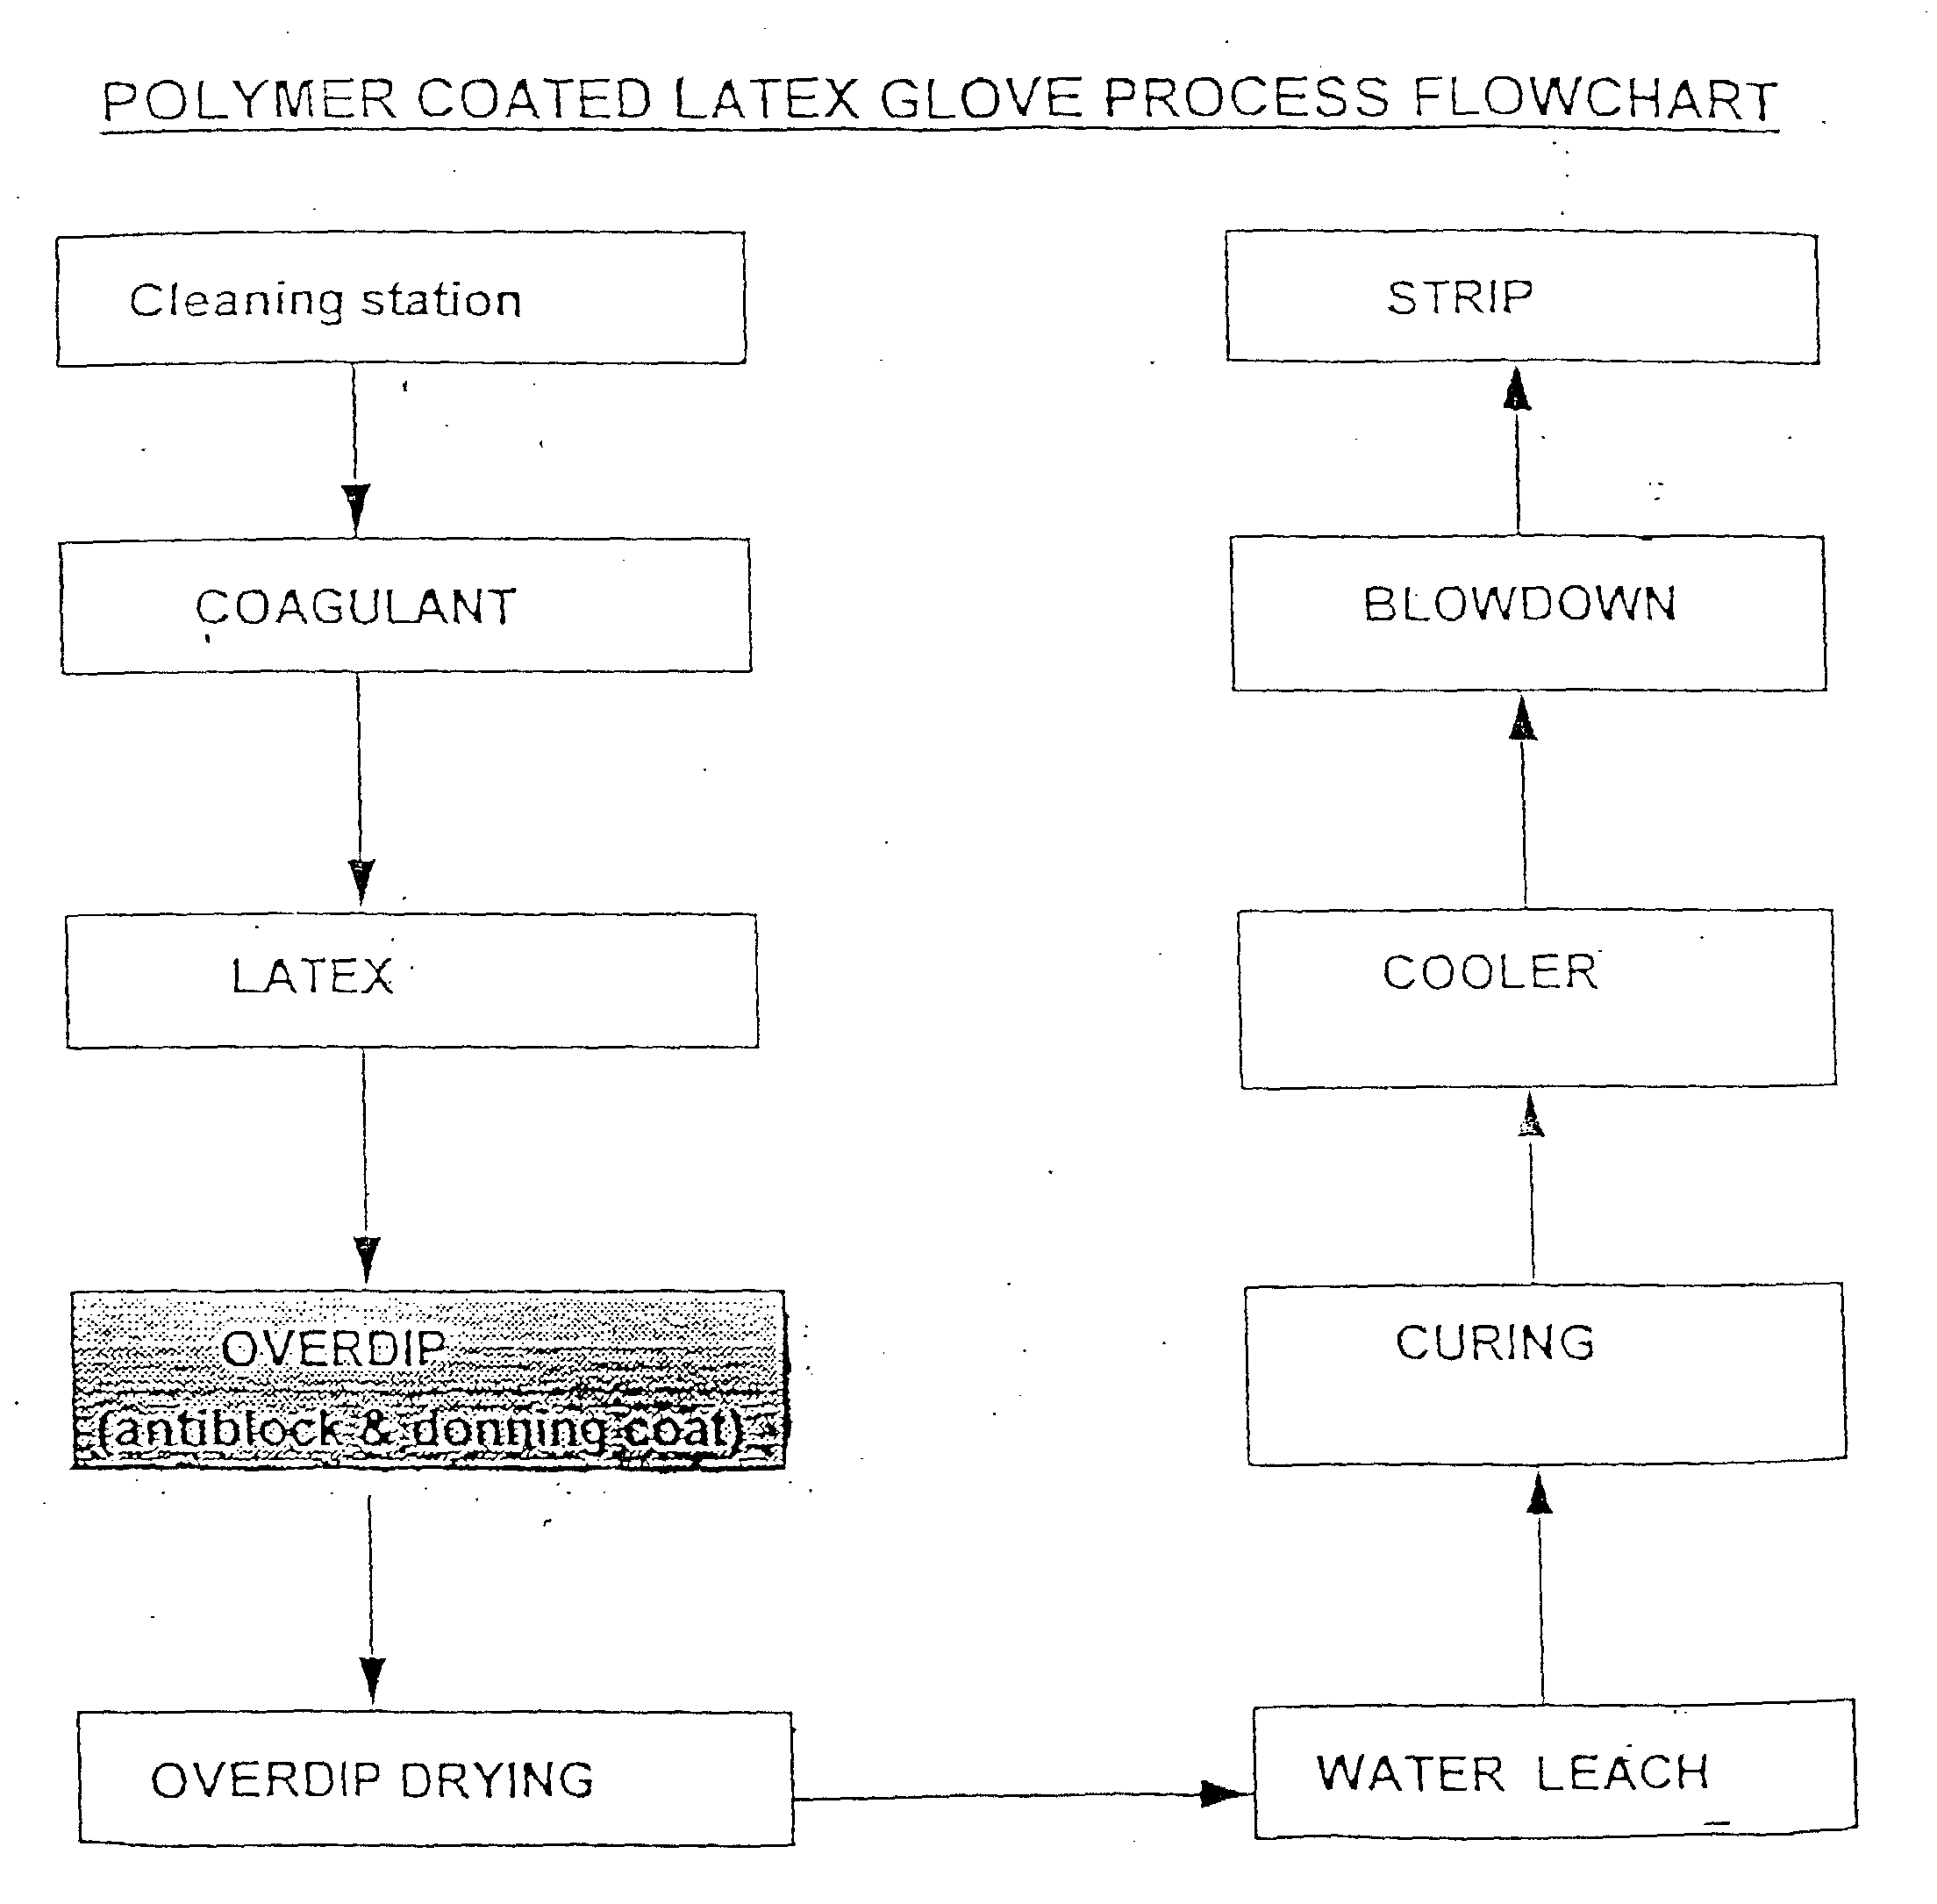 Ep0906731a2 powder free medical glove and manufacture thereof figure 00040001 as illustrated in the flow chart nvjuhfo Images